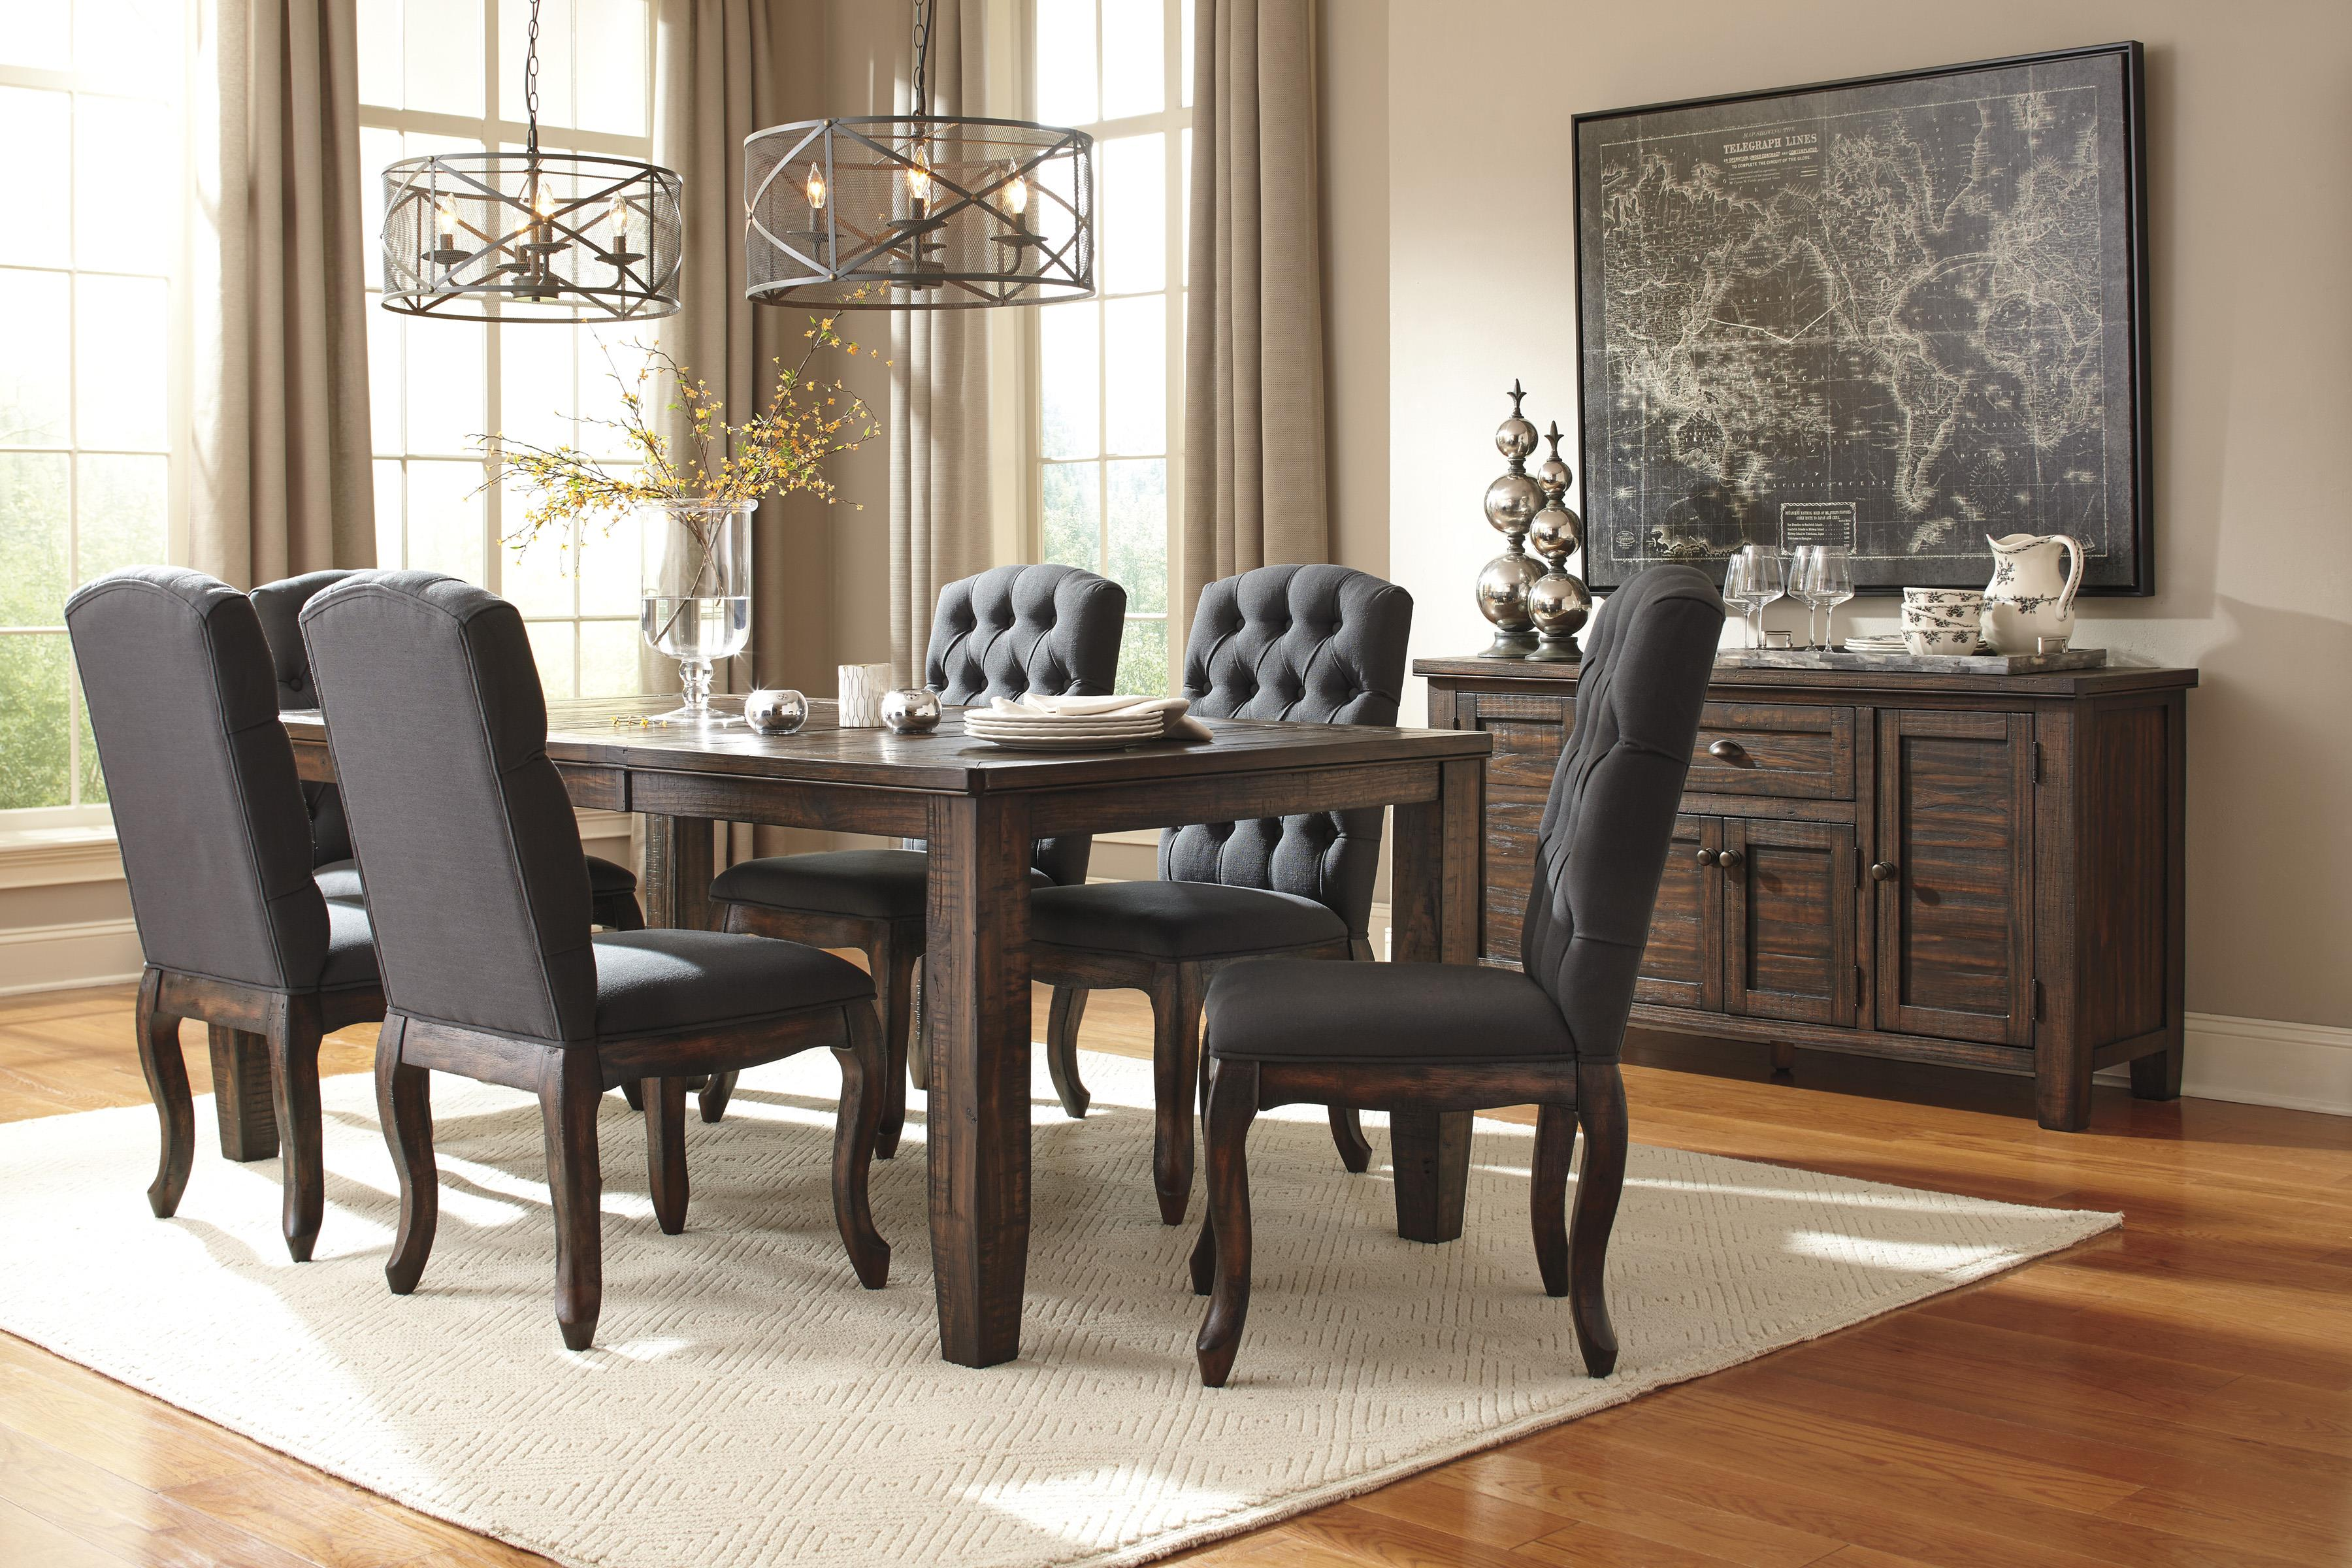 Dining Upholstered Side Chair with Tufted Back and